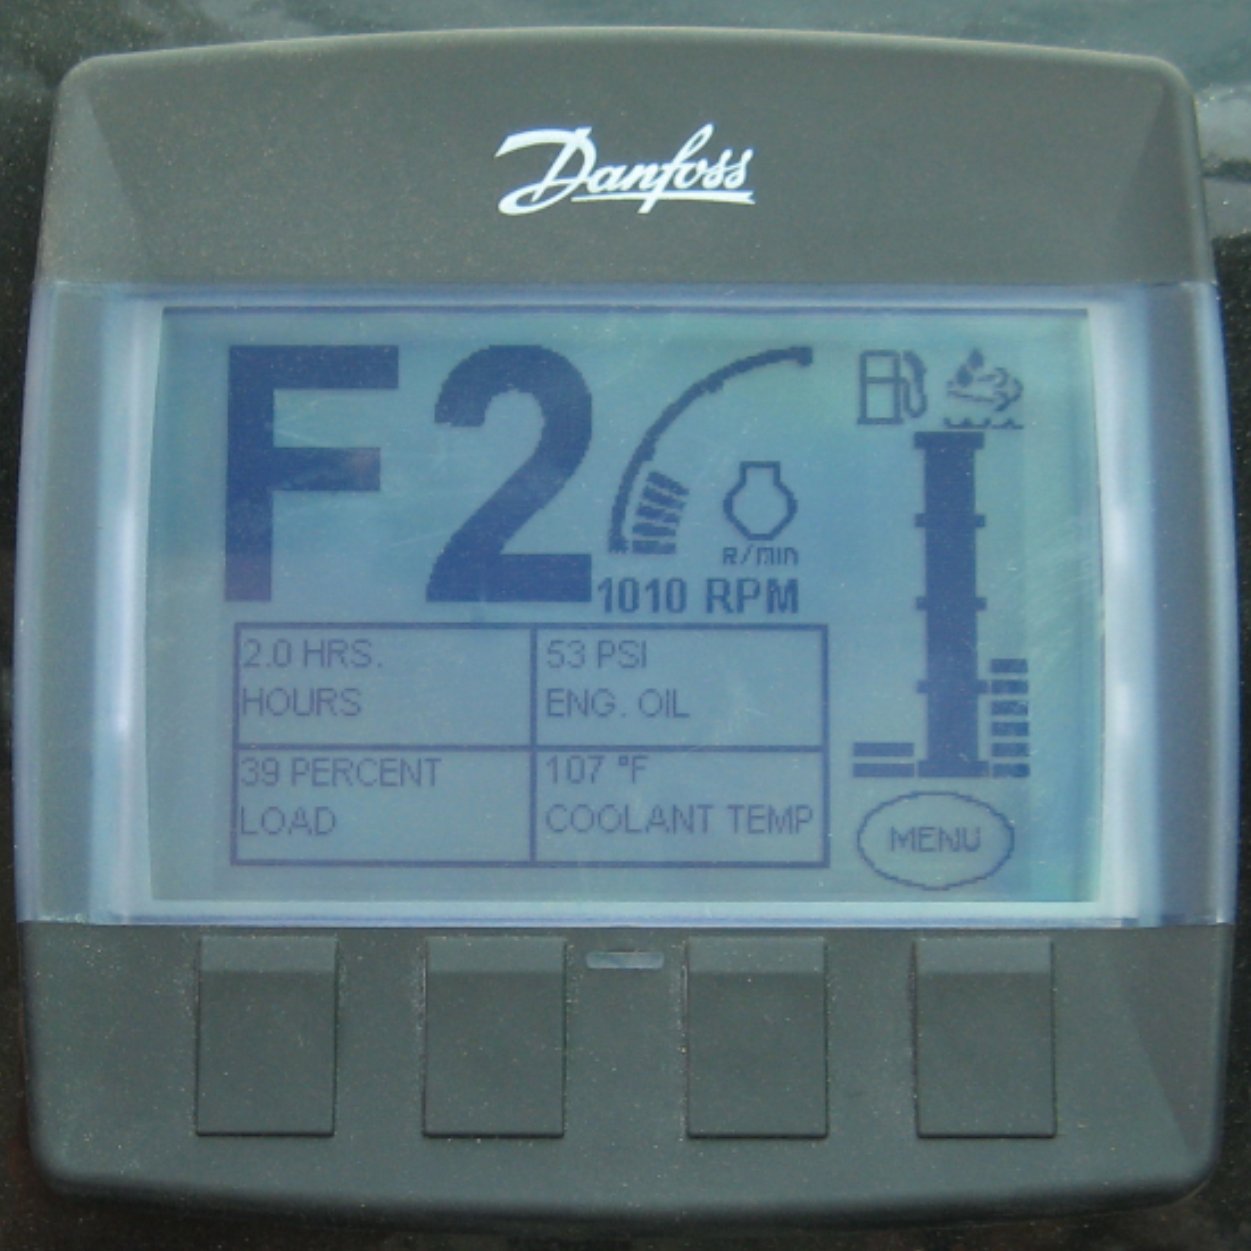 LCD Message Center